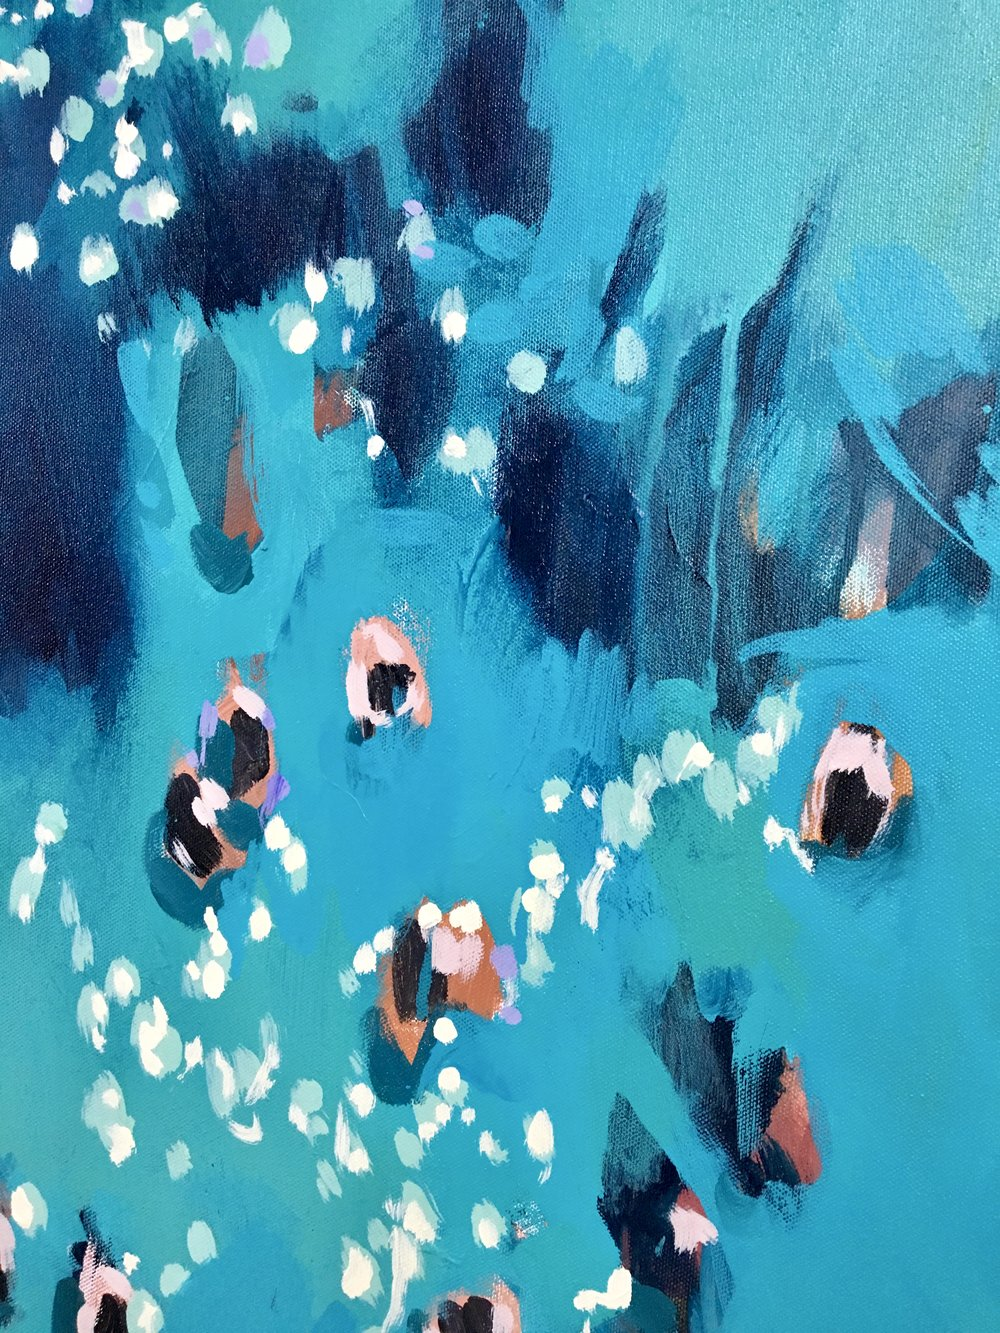 Blue Swimmers (detail), 2018